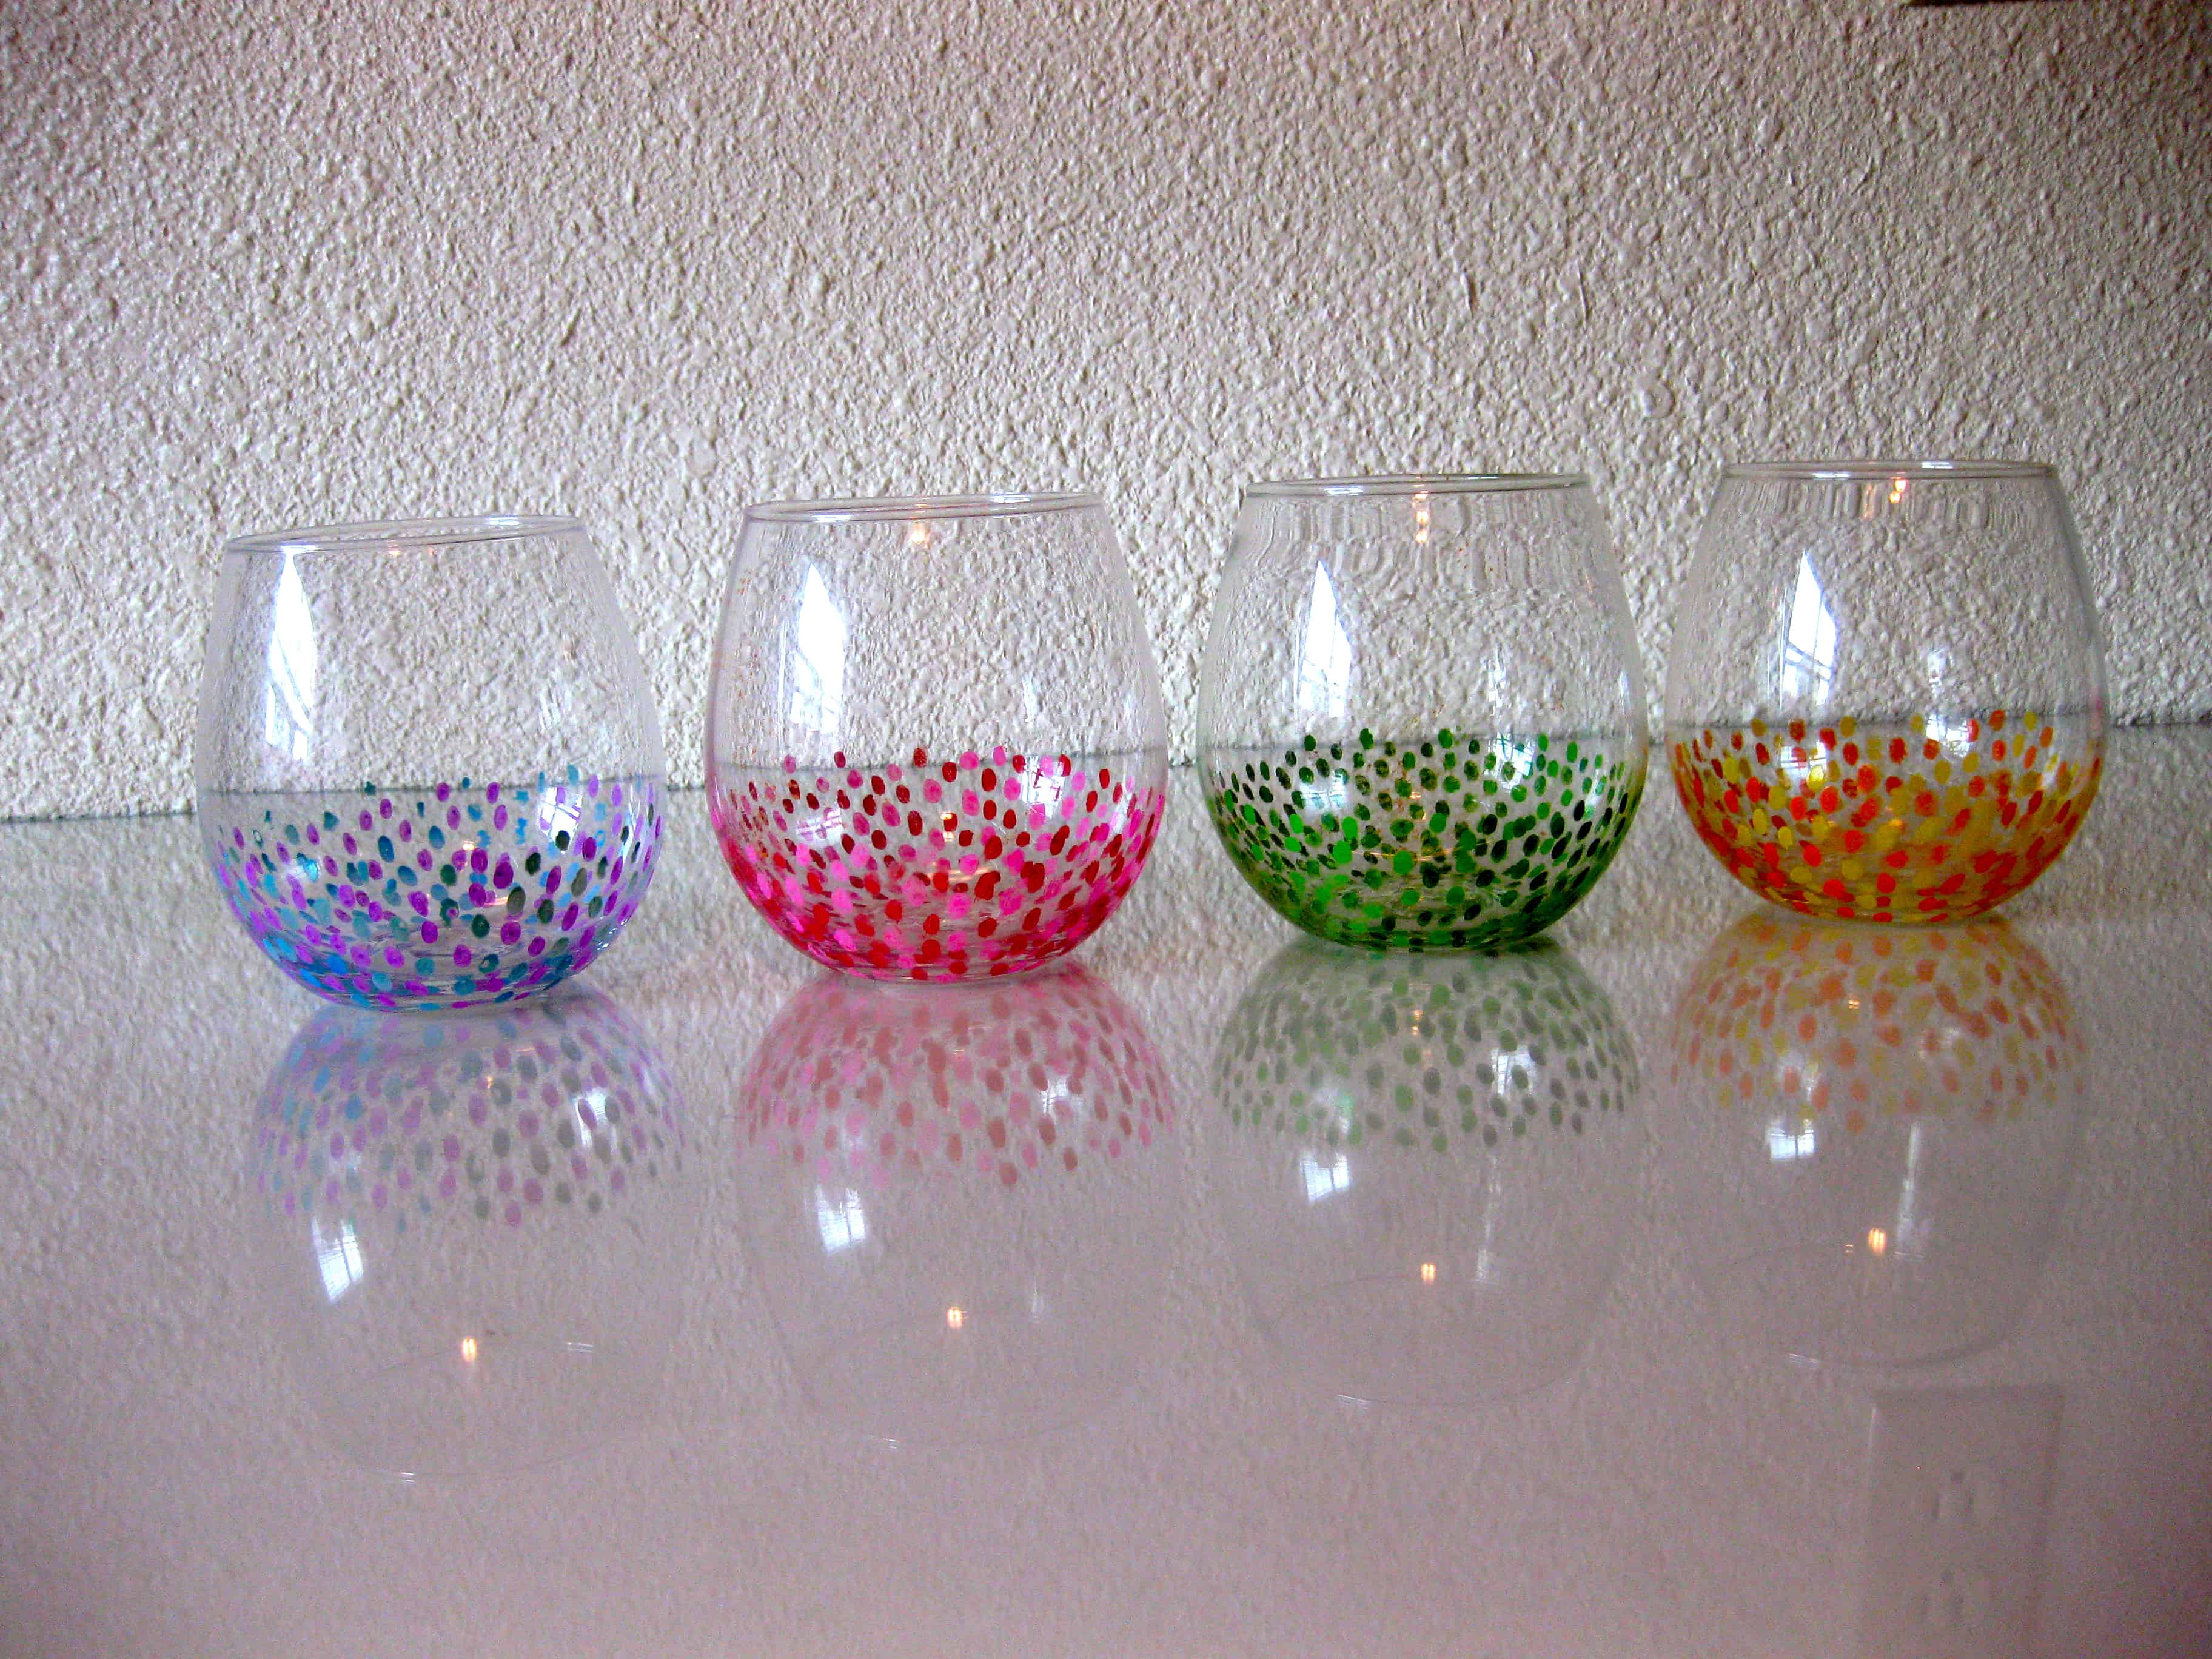 Speckled tumbler glasses